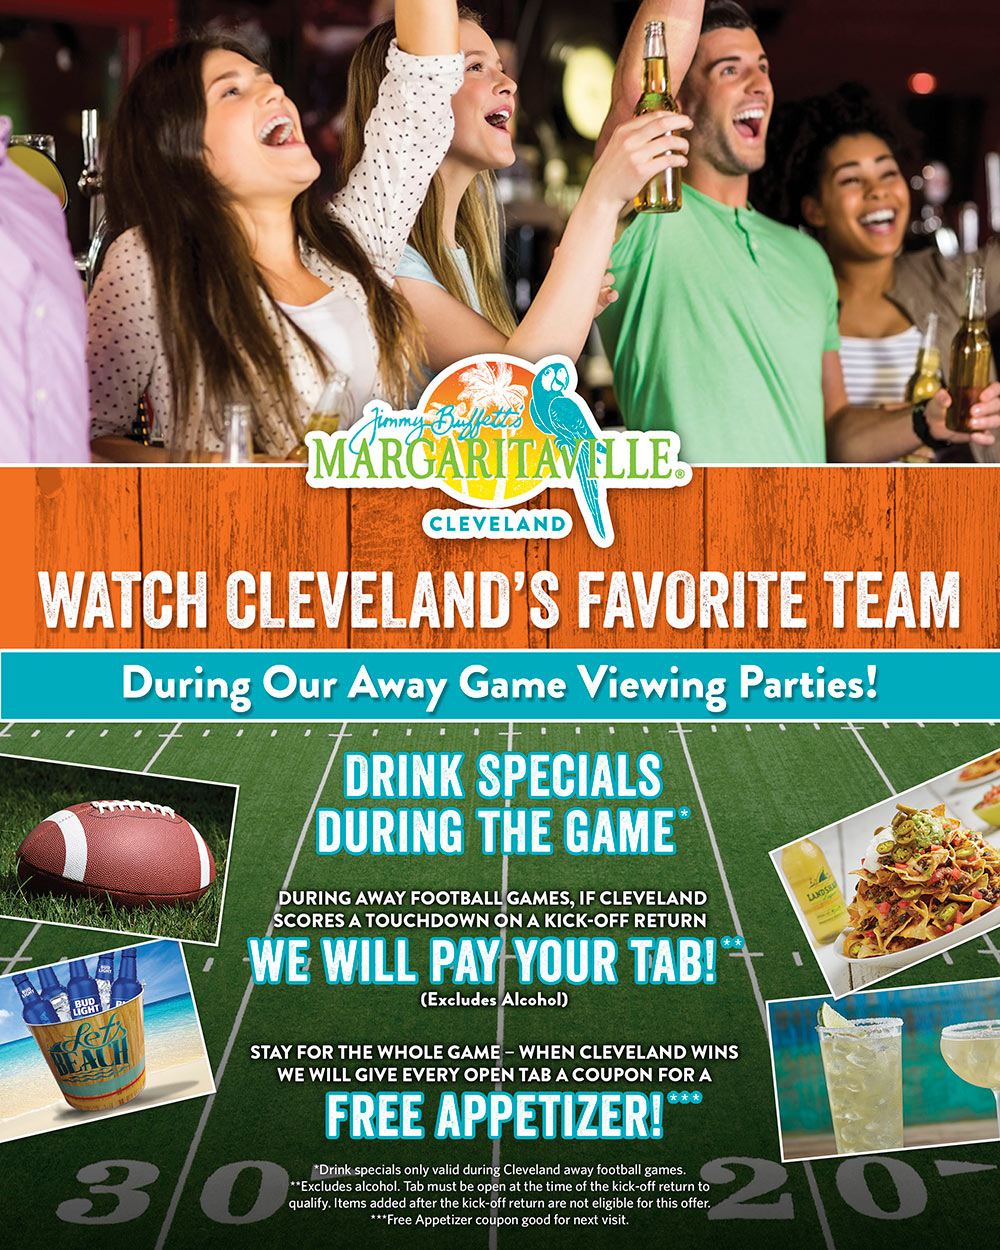 Watch Cleveland's favorite team during our away game viewing parties, and enjoy drink specials during the game, we'll pay your tab if Cleveland scores a touchdown on a kick-off return during away football games, and stay for the whole game and when Cleveland wins, we'll give every open tab a coupon for a free appetizer! Call or ask us for details on terms and exclusions.